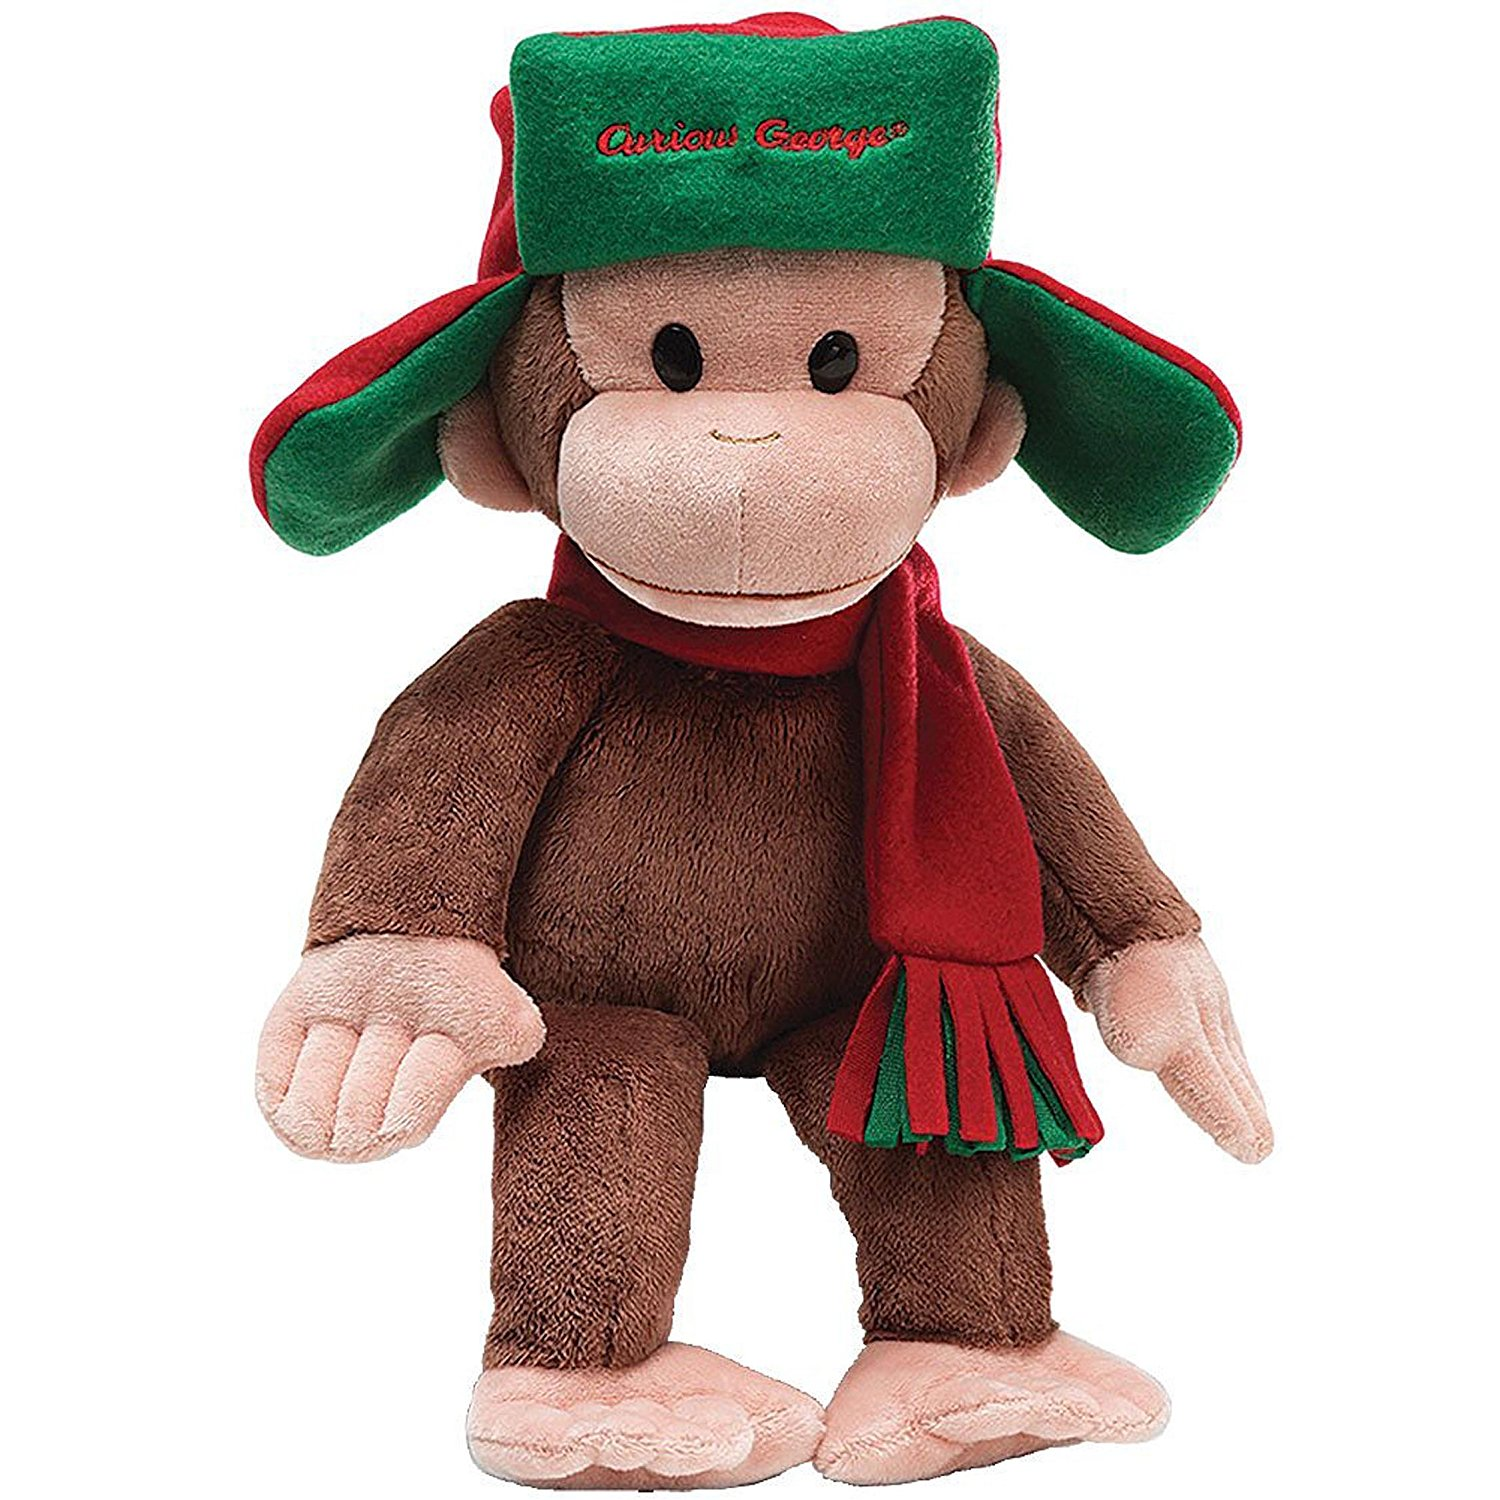 Curious George with Fargo Hat Plush Toy Classic Gund Stuffed Animal, Includes 1x Curious George plush By... by